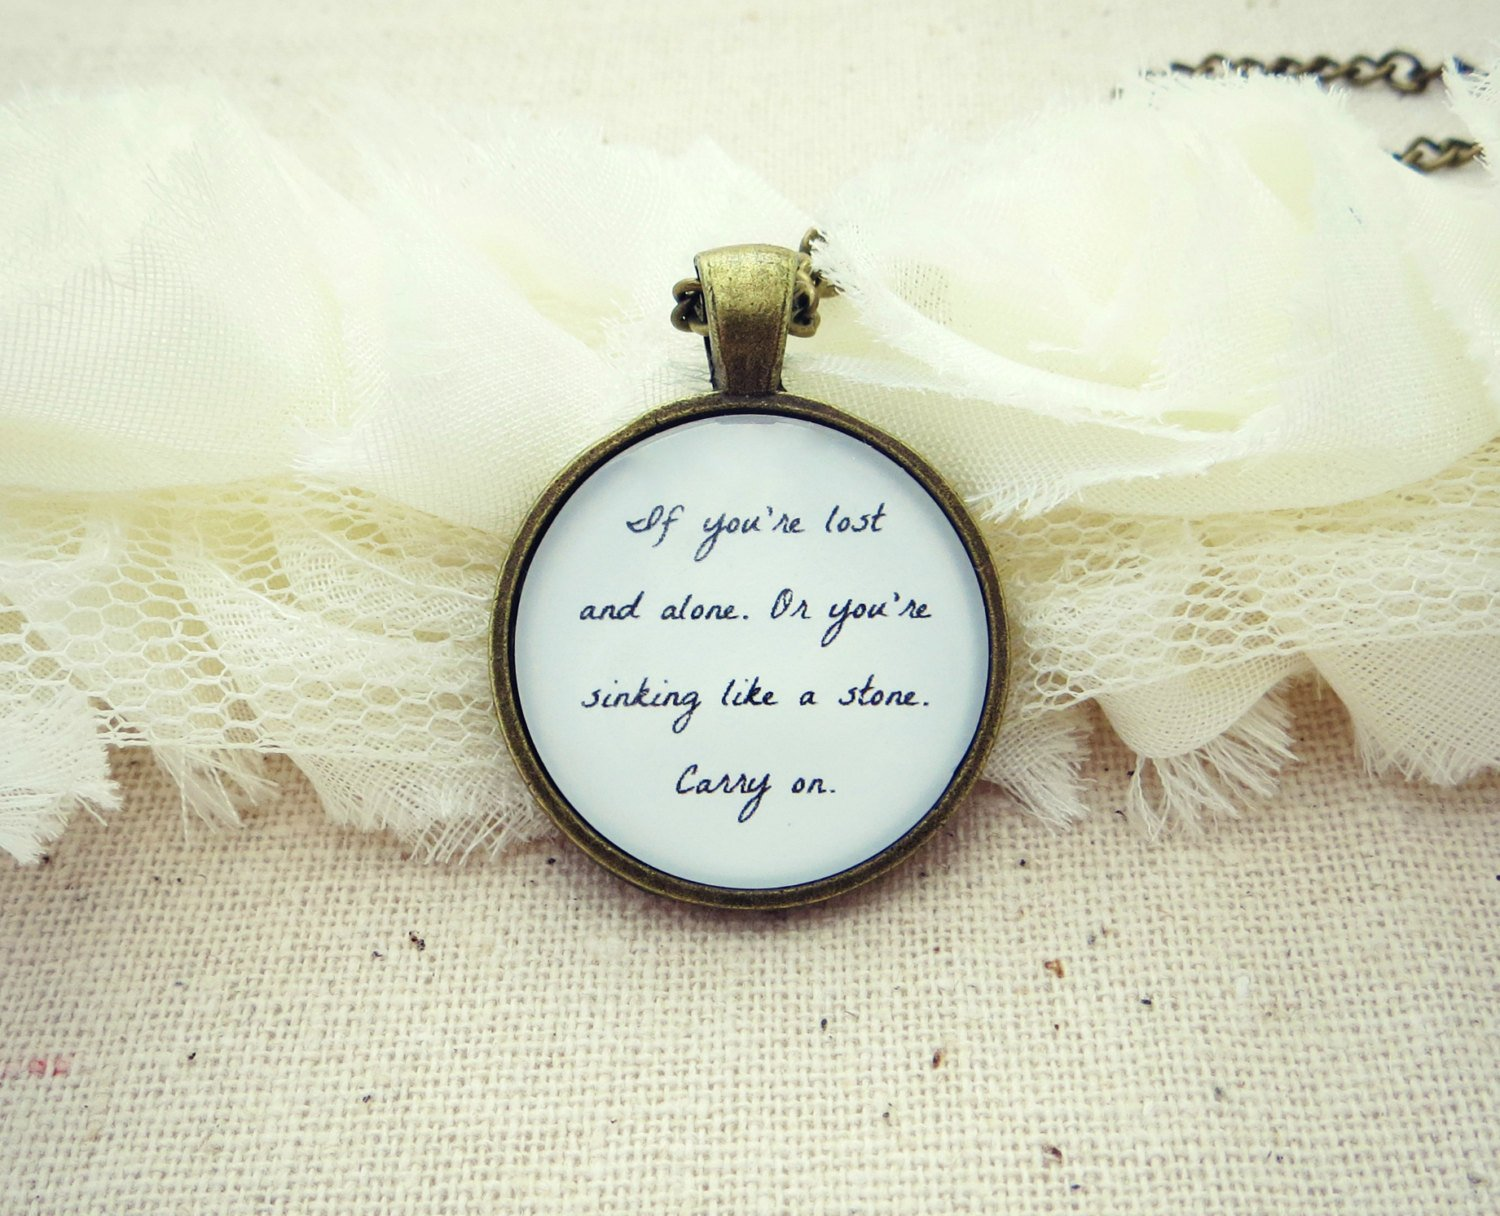 FUN Carry On Inspired Lyrical Quote Pendant Necklace (Brass, 18 inches, F.U.N.)